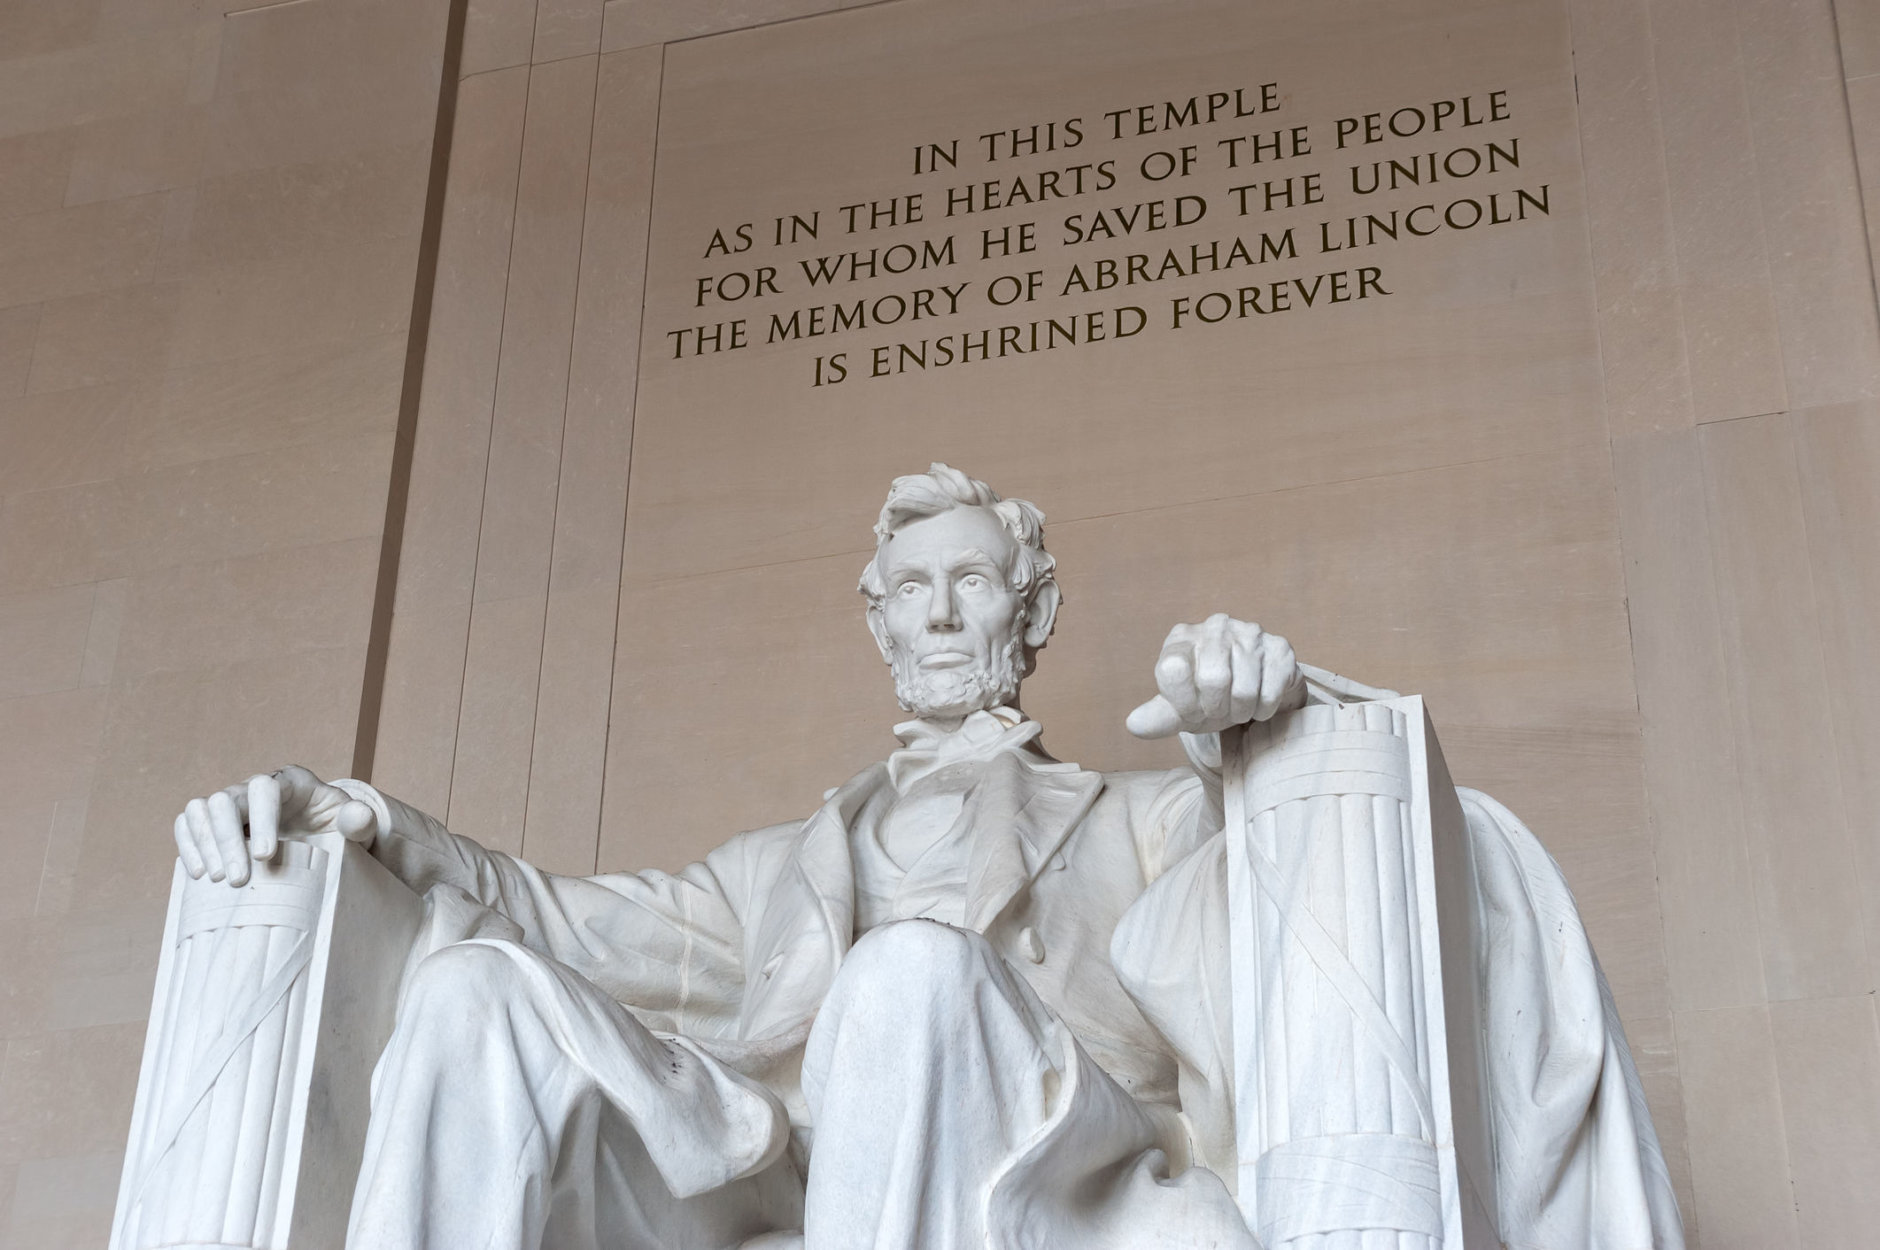 Abraham Lincoln Memorial in Washington D.C. is one of the most famous tourist sites. (Thinkstock)